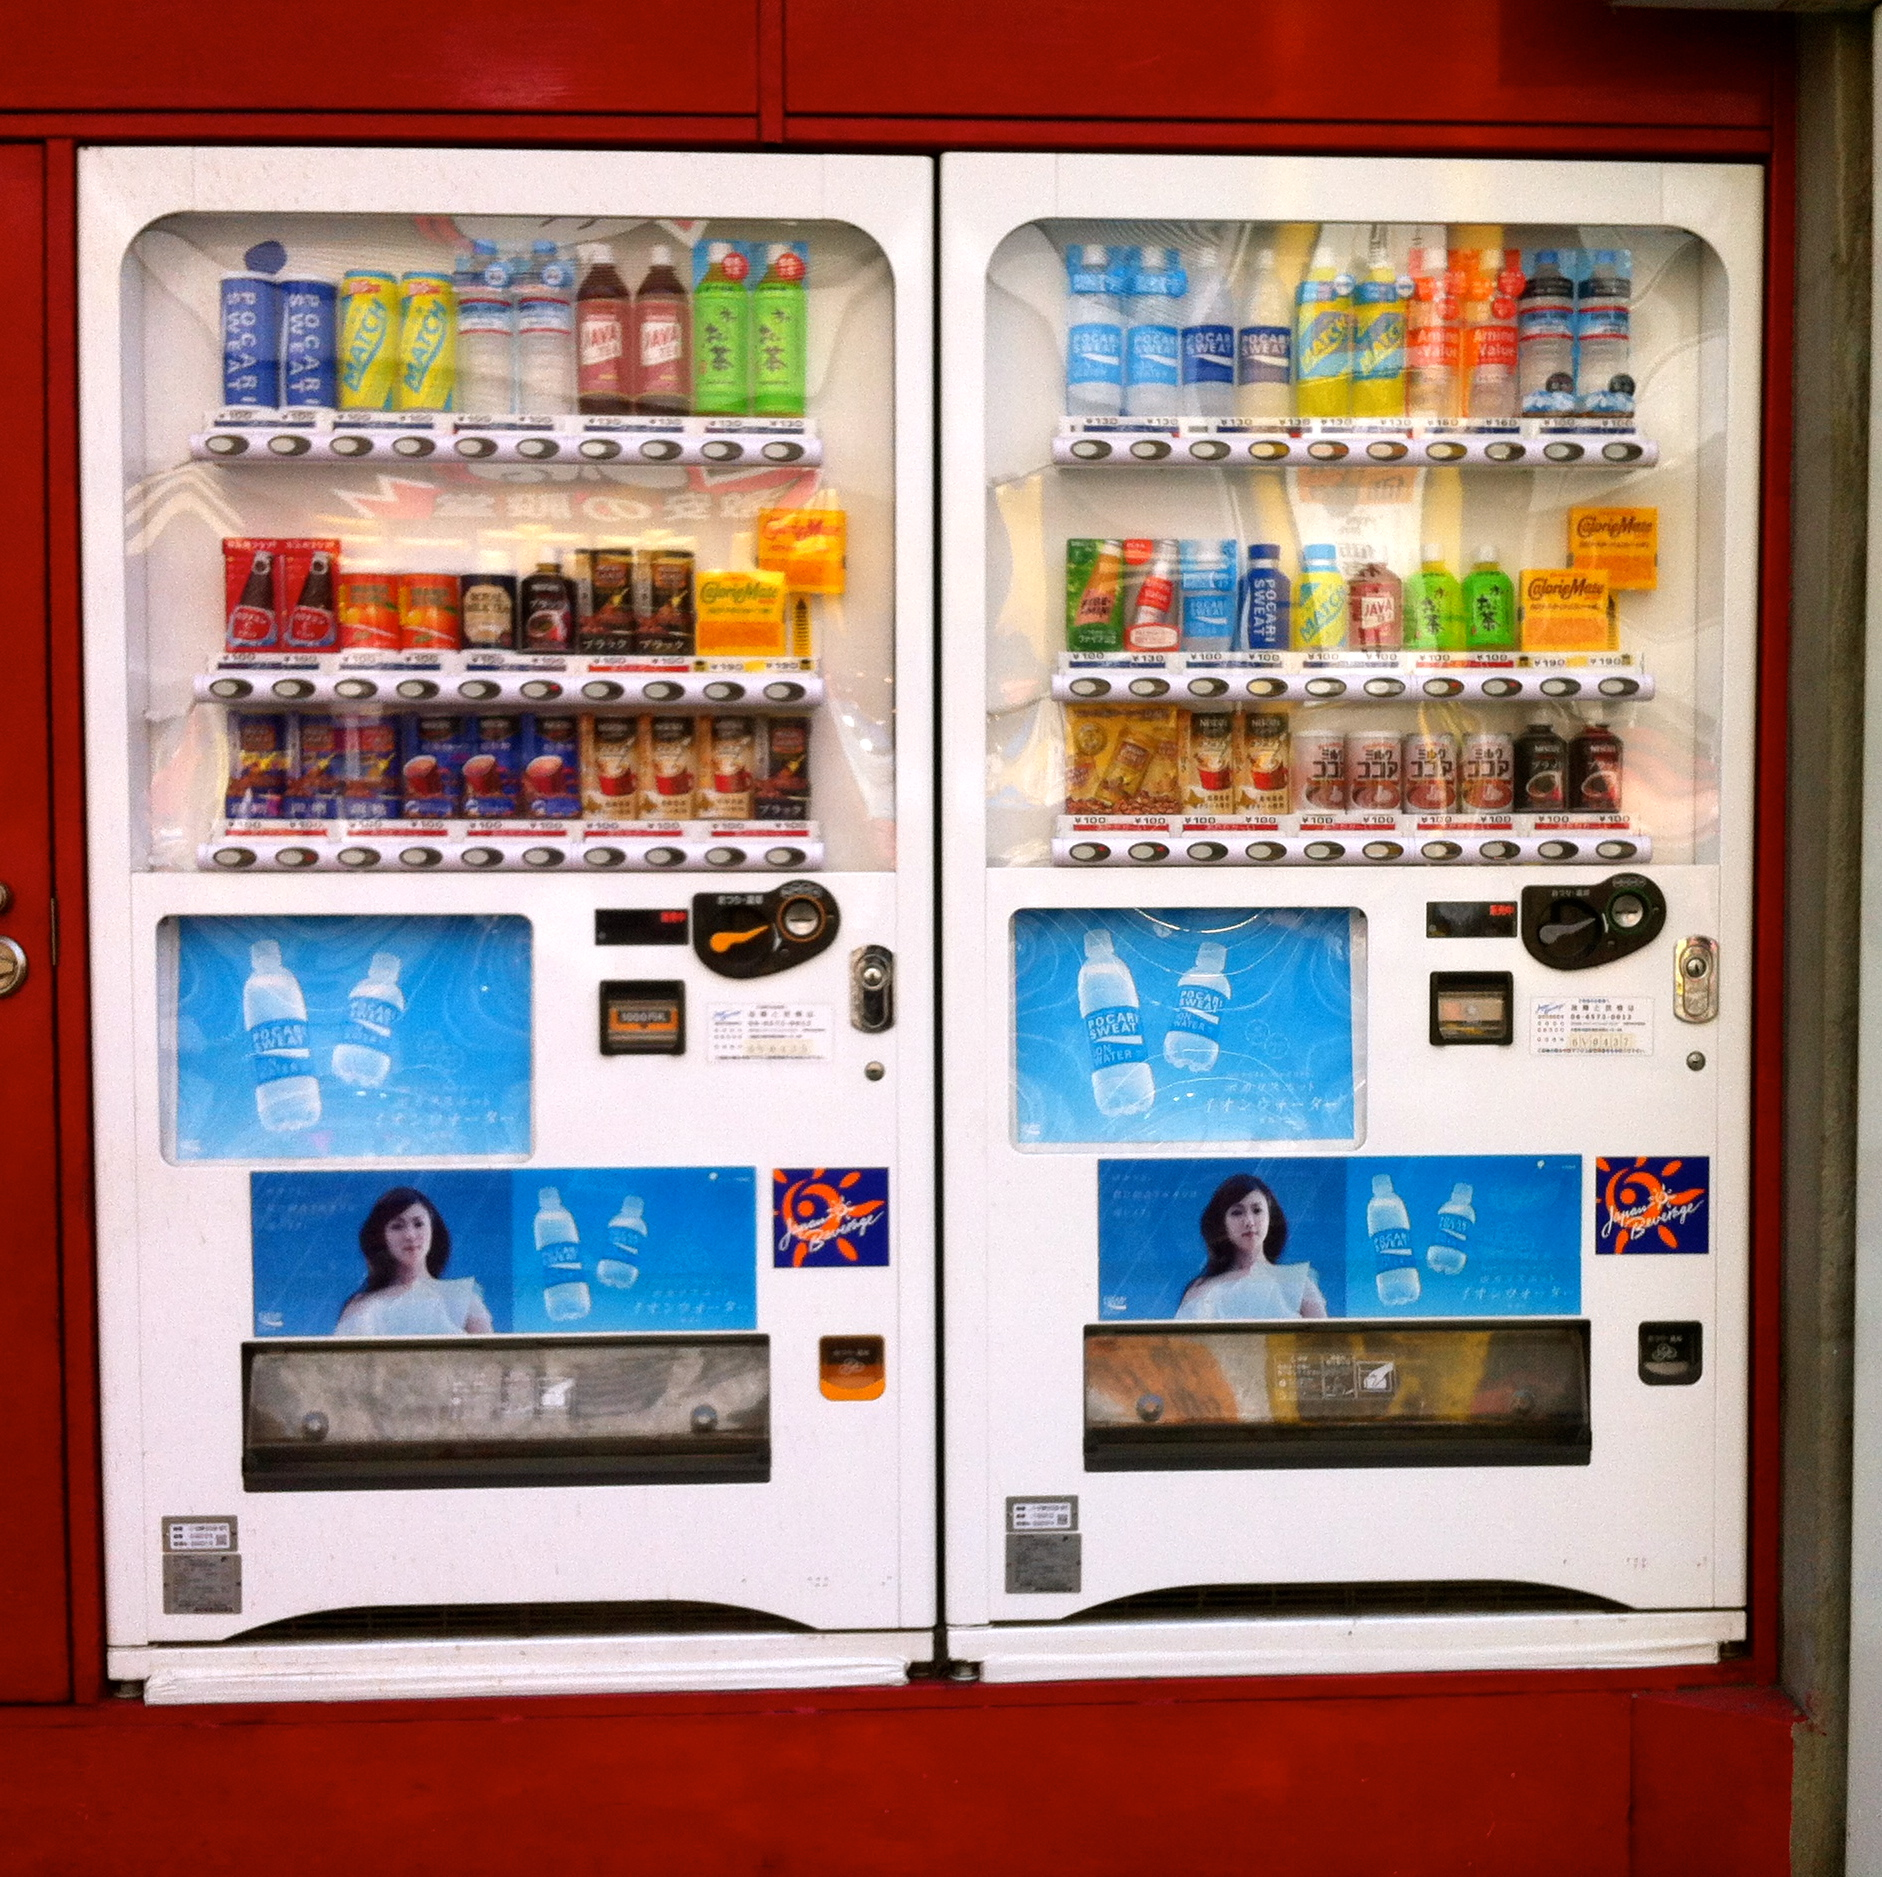 If Your Image Of An Is A Country With Vending Machines Everywhere You Have Got It Spot On Practically Impossible To Walk More Than 50m In